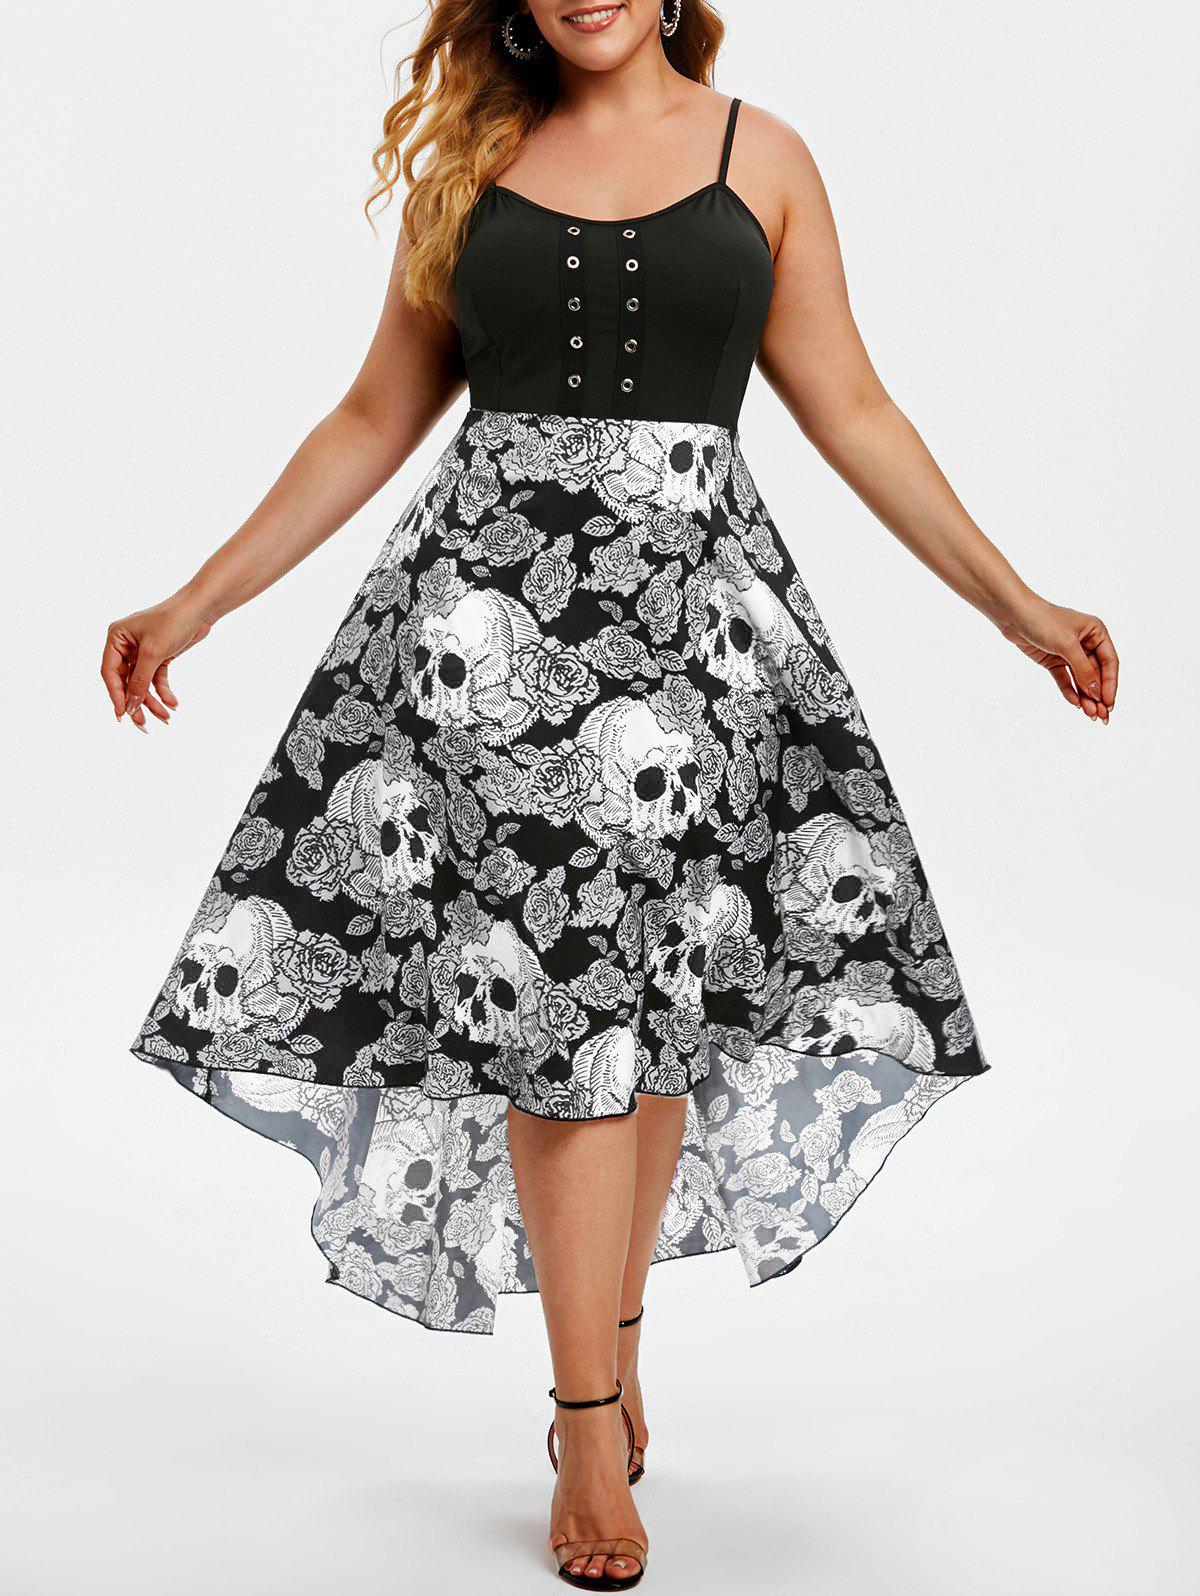 Online Grommet High Low Floral Skull Halloween Plus Size Dress